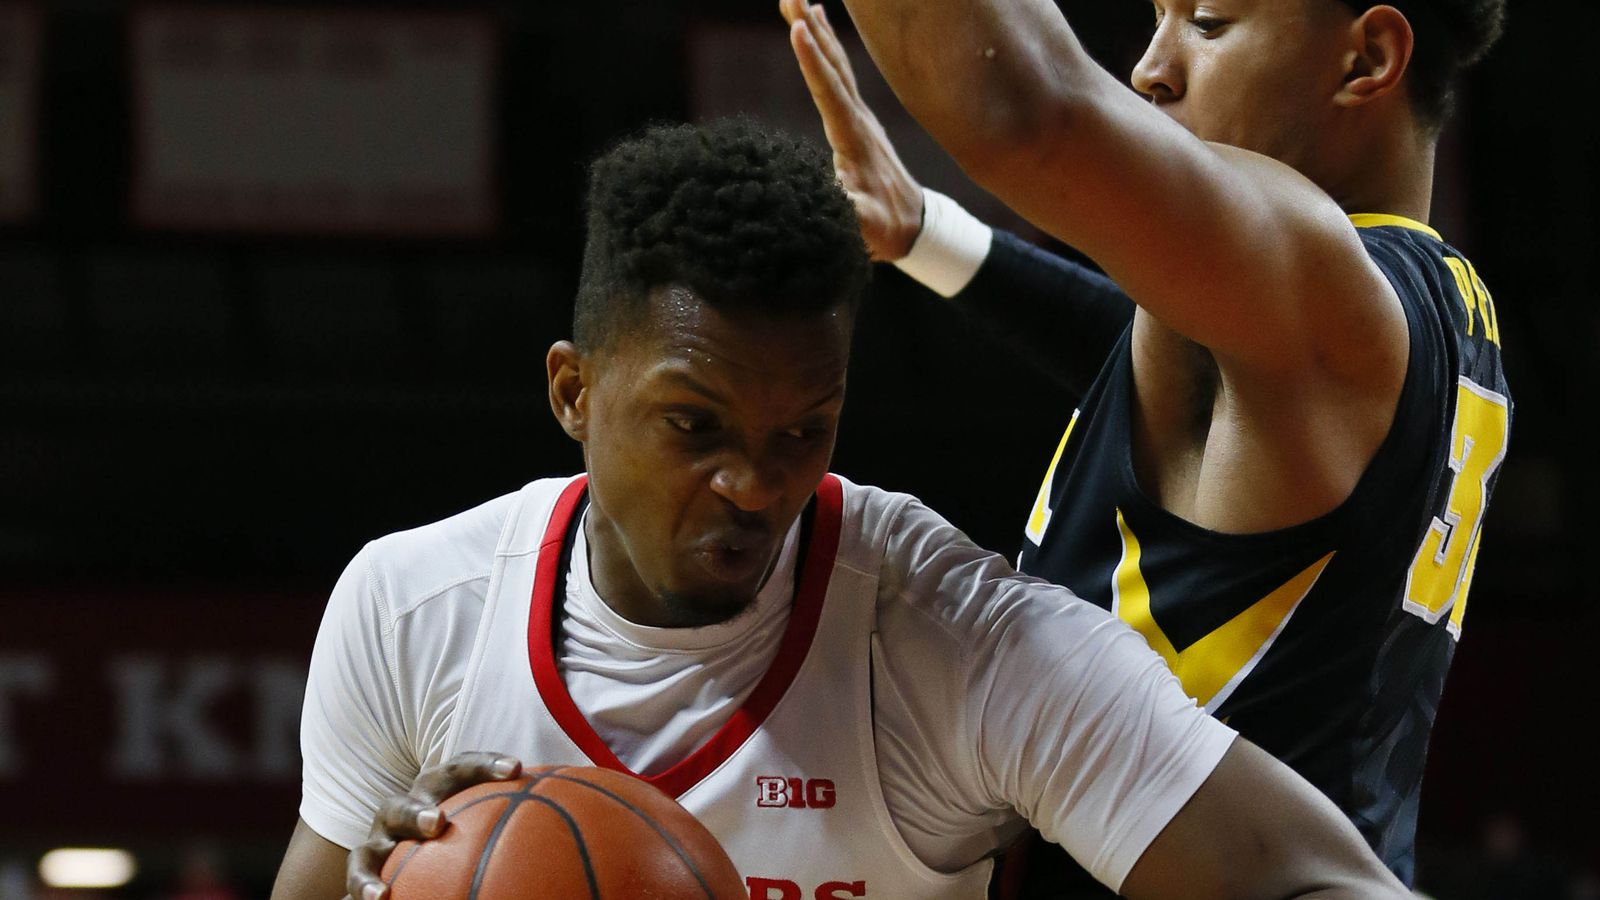 Report: Rutgers Basketball F/C Ibrahima Diallo is Transferring